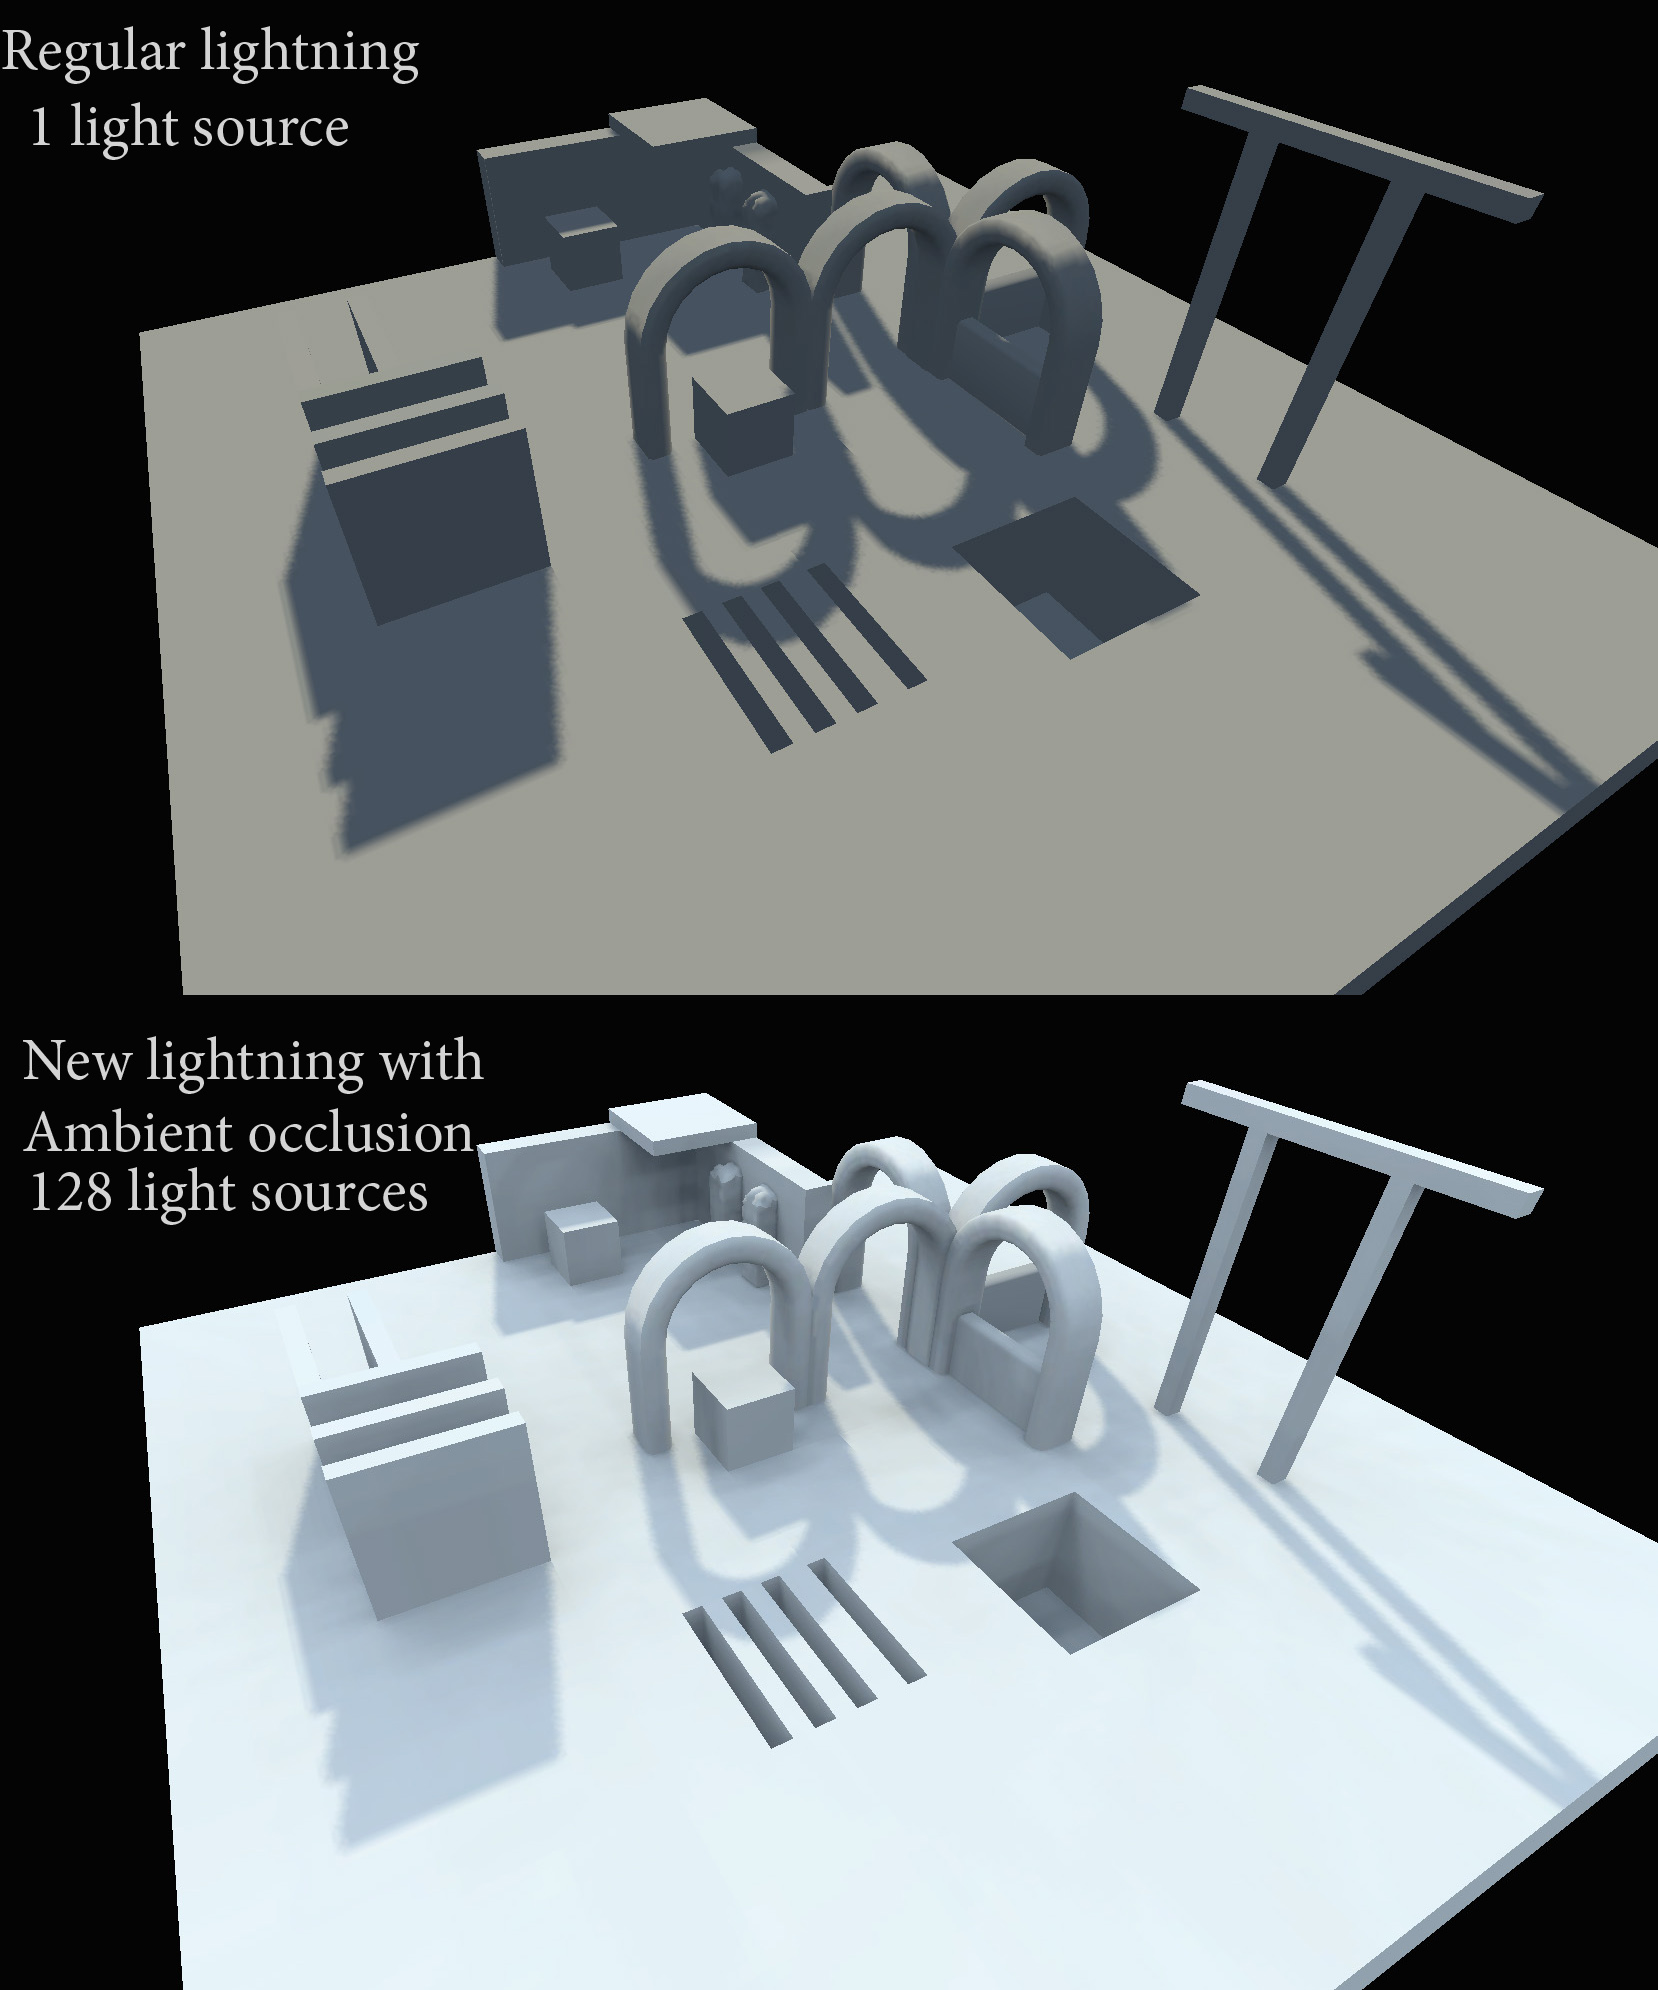 Ambient occlusion baking experiments image - Tales of wenda mod for